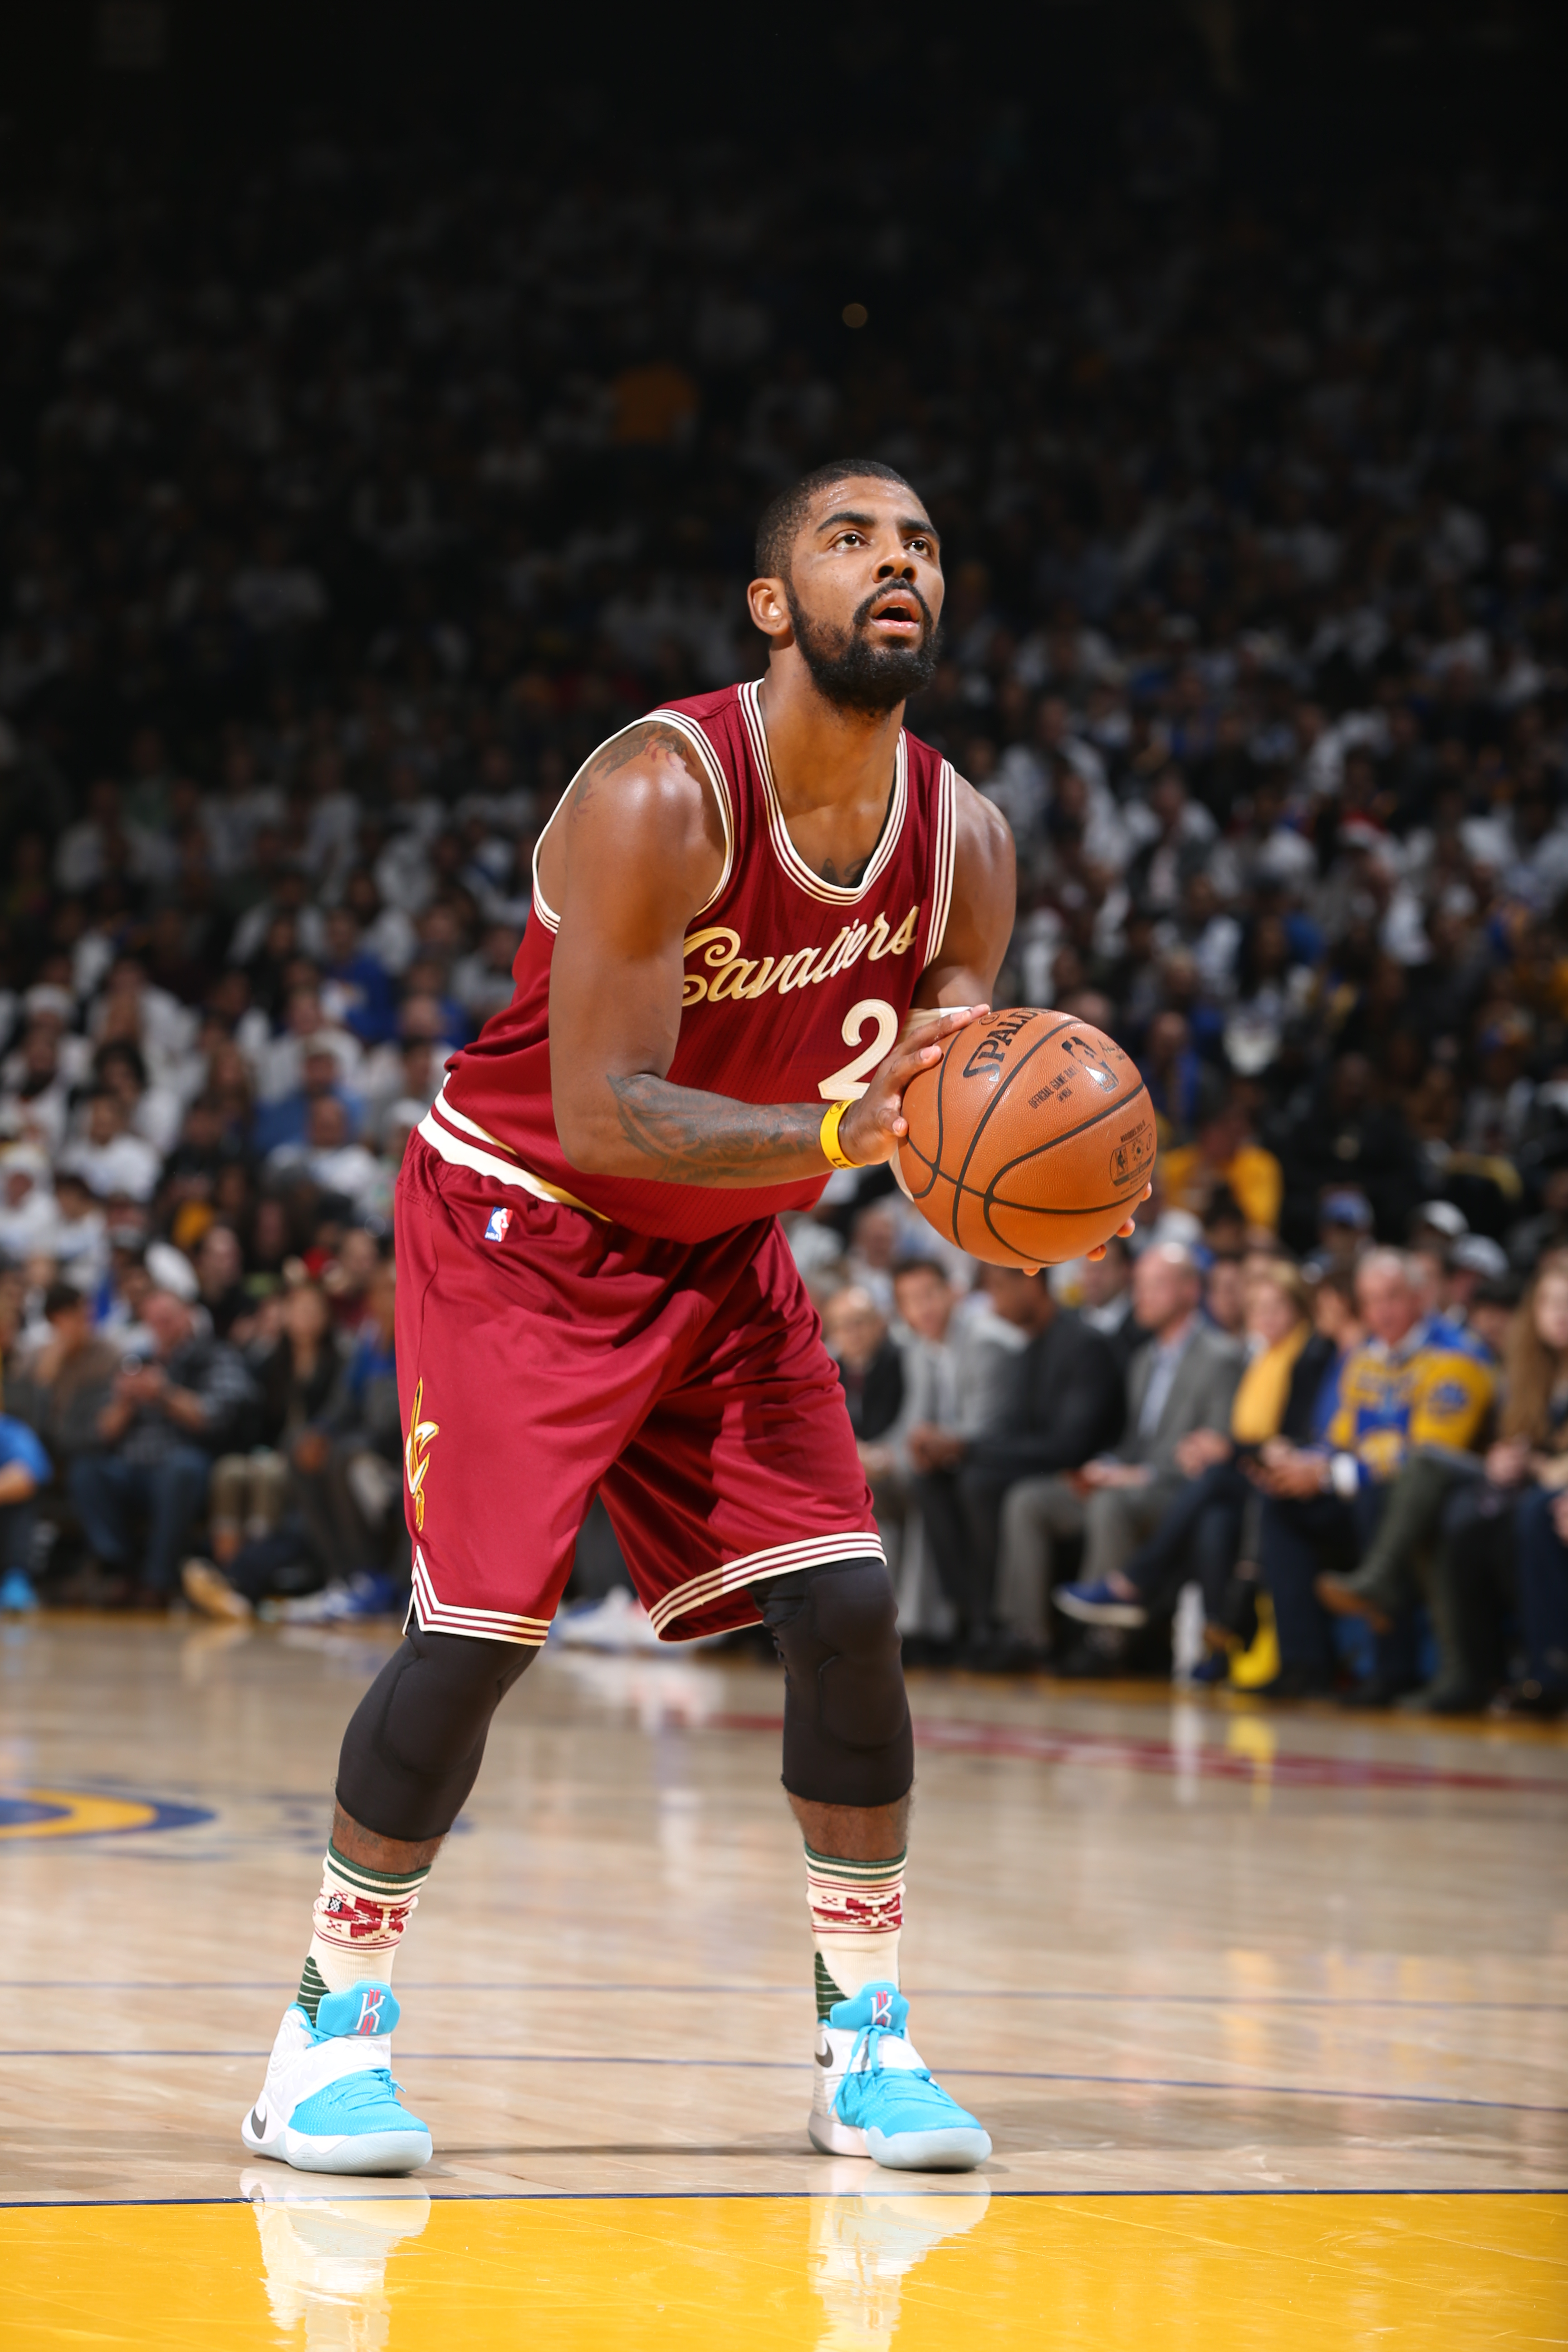 OAKLAND, CA - DECEMBER 25:  Kyrie Irving #2 of the Cleveland Cavaliers shoots a foul shot against the Golden State Warriors on December 25, 2015 at ORACLE Arena in Oakland,California.(Photo by David Sherman/NBAE via Getty Images)